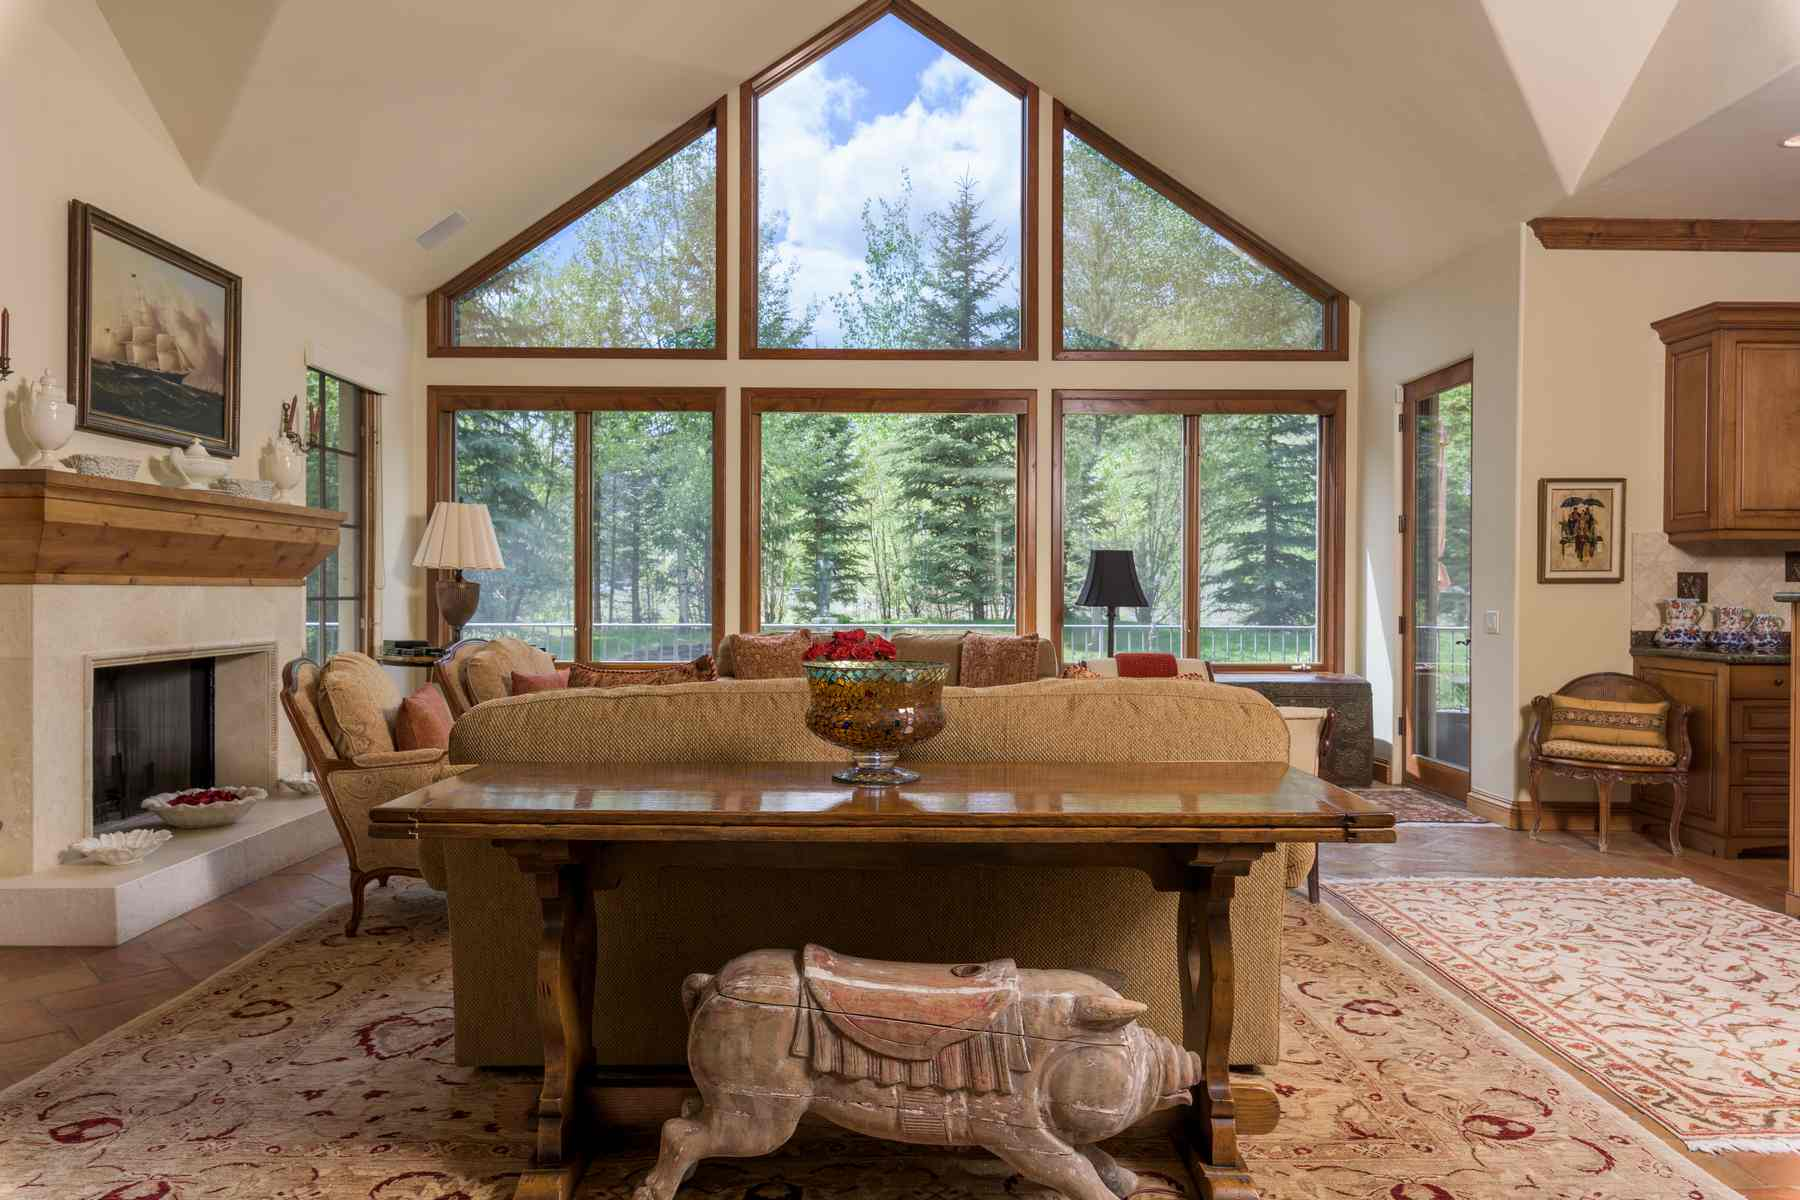 Maison unifamiliale pour l Vente à Rarely Available Estate Caliber Home 1100 W Canyon Run Blvd. Ketchum, Idaho, 83340 États-Unis